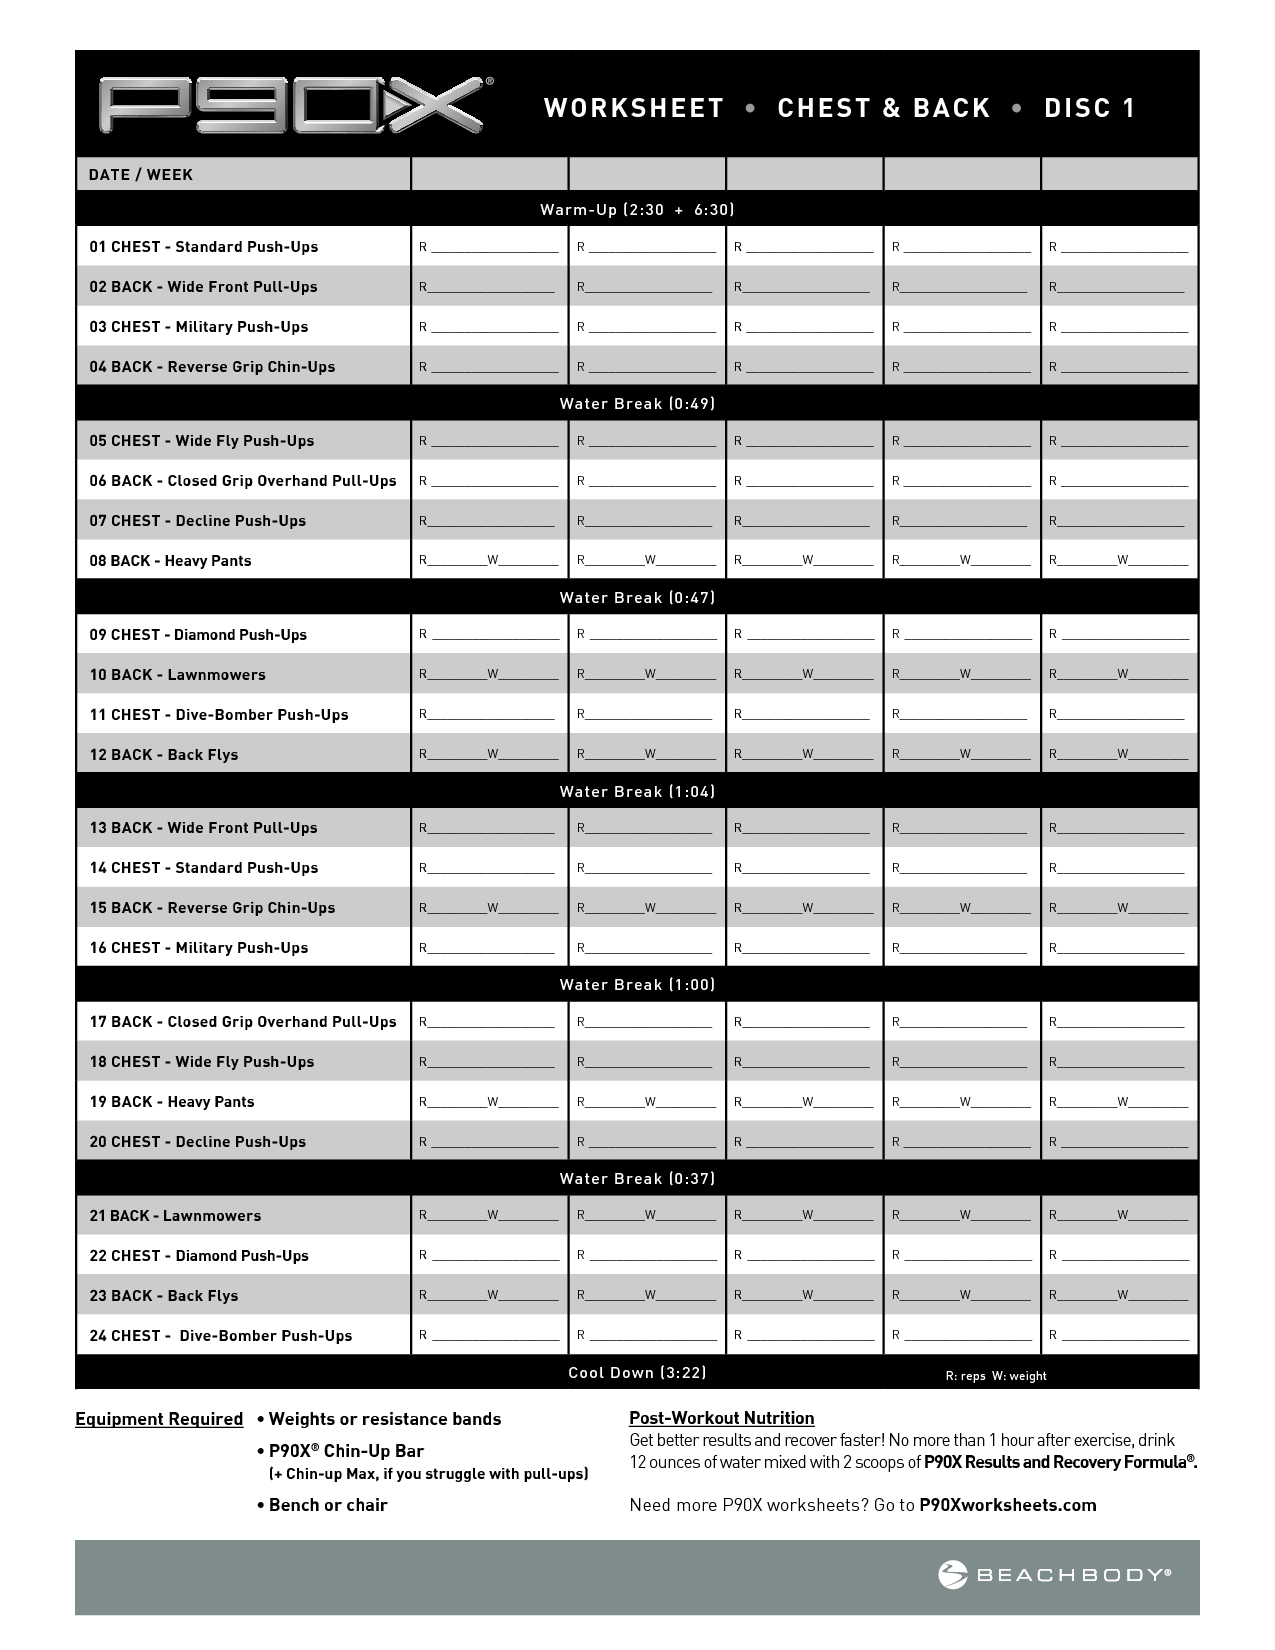 P90x Shoulders And Arms Spreadsheets